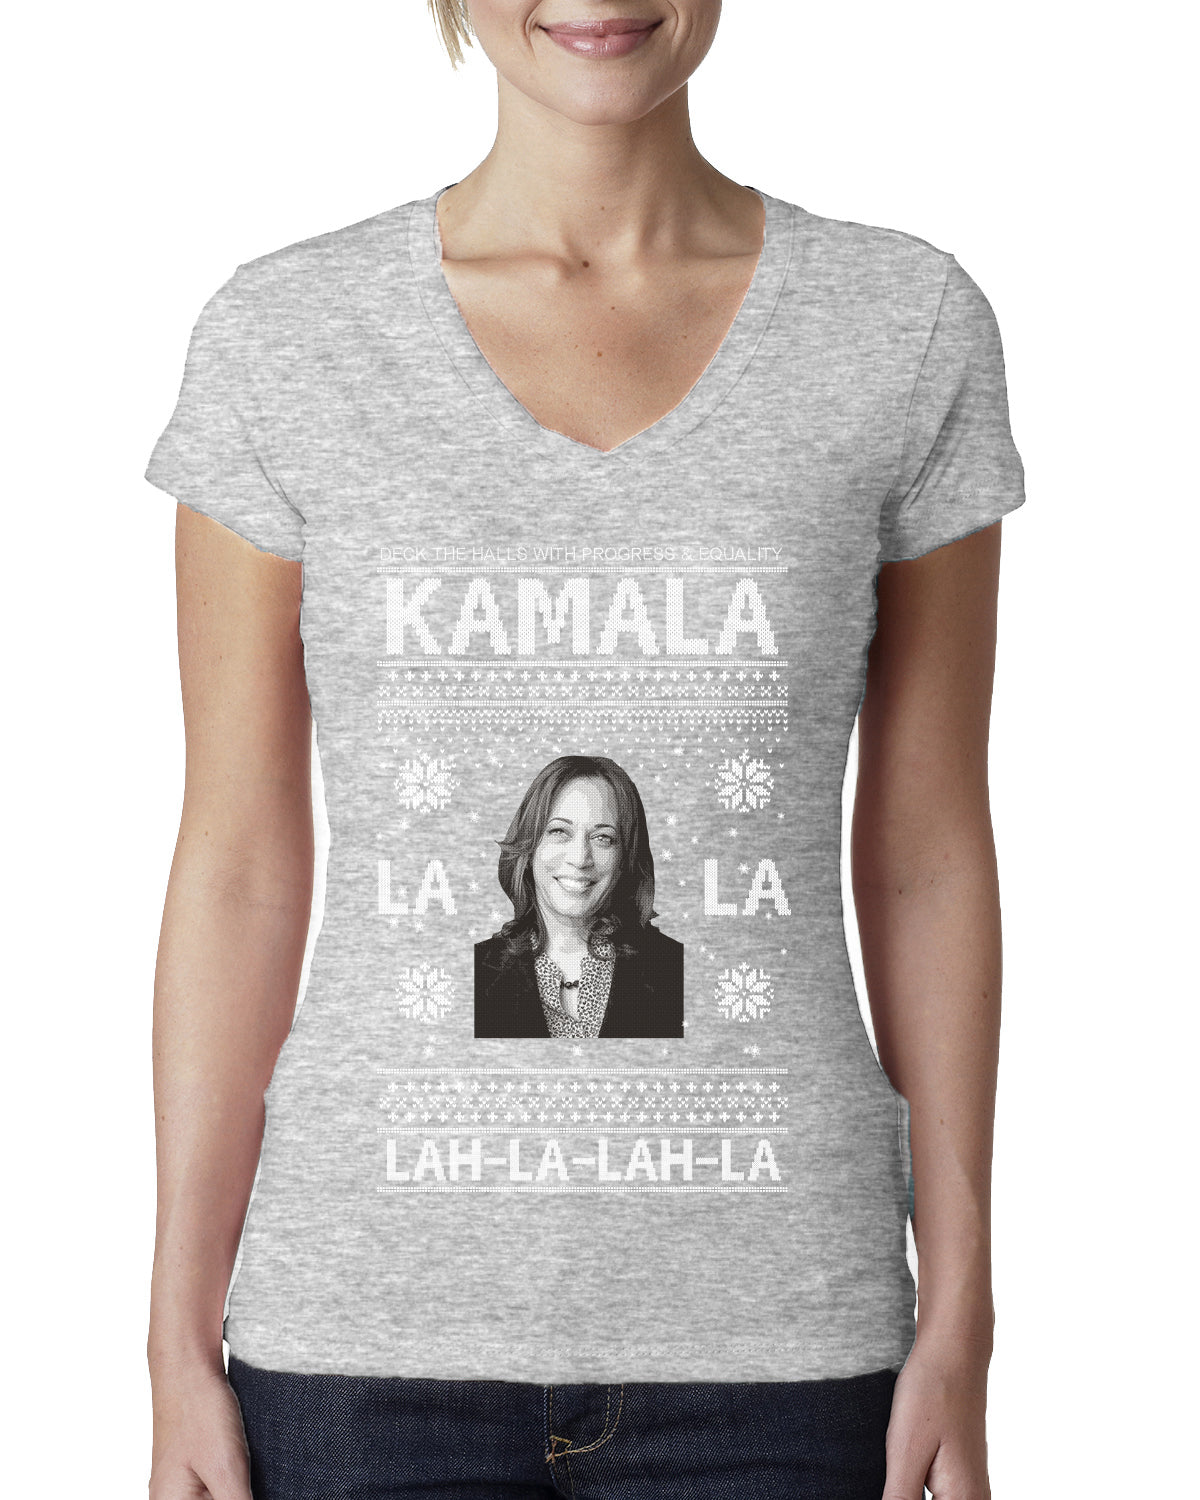 Kamala La La Lah-La-Lah-La Harris 2020 Ugly Christmas Sweater Womens Junior Fit V-Neck Tee